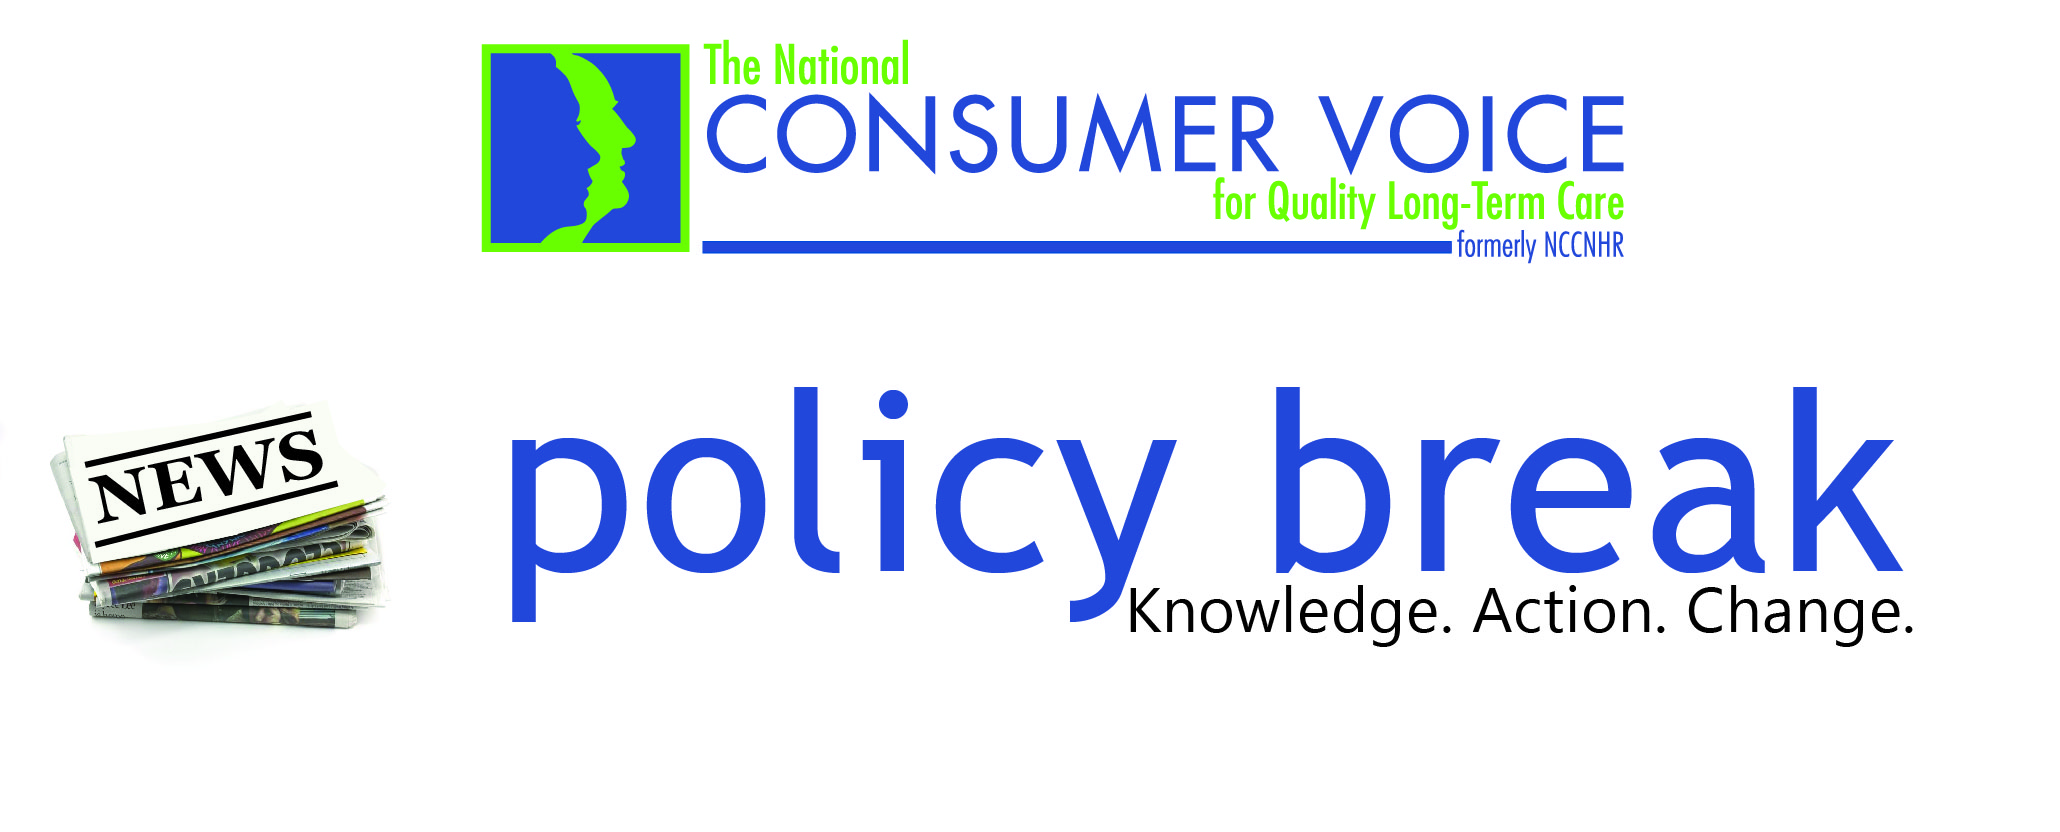 Consumer Voice 2016 Conference